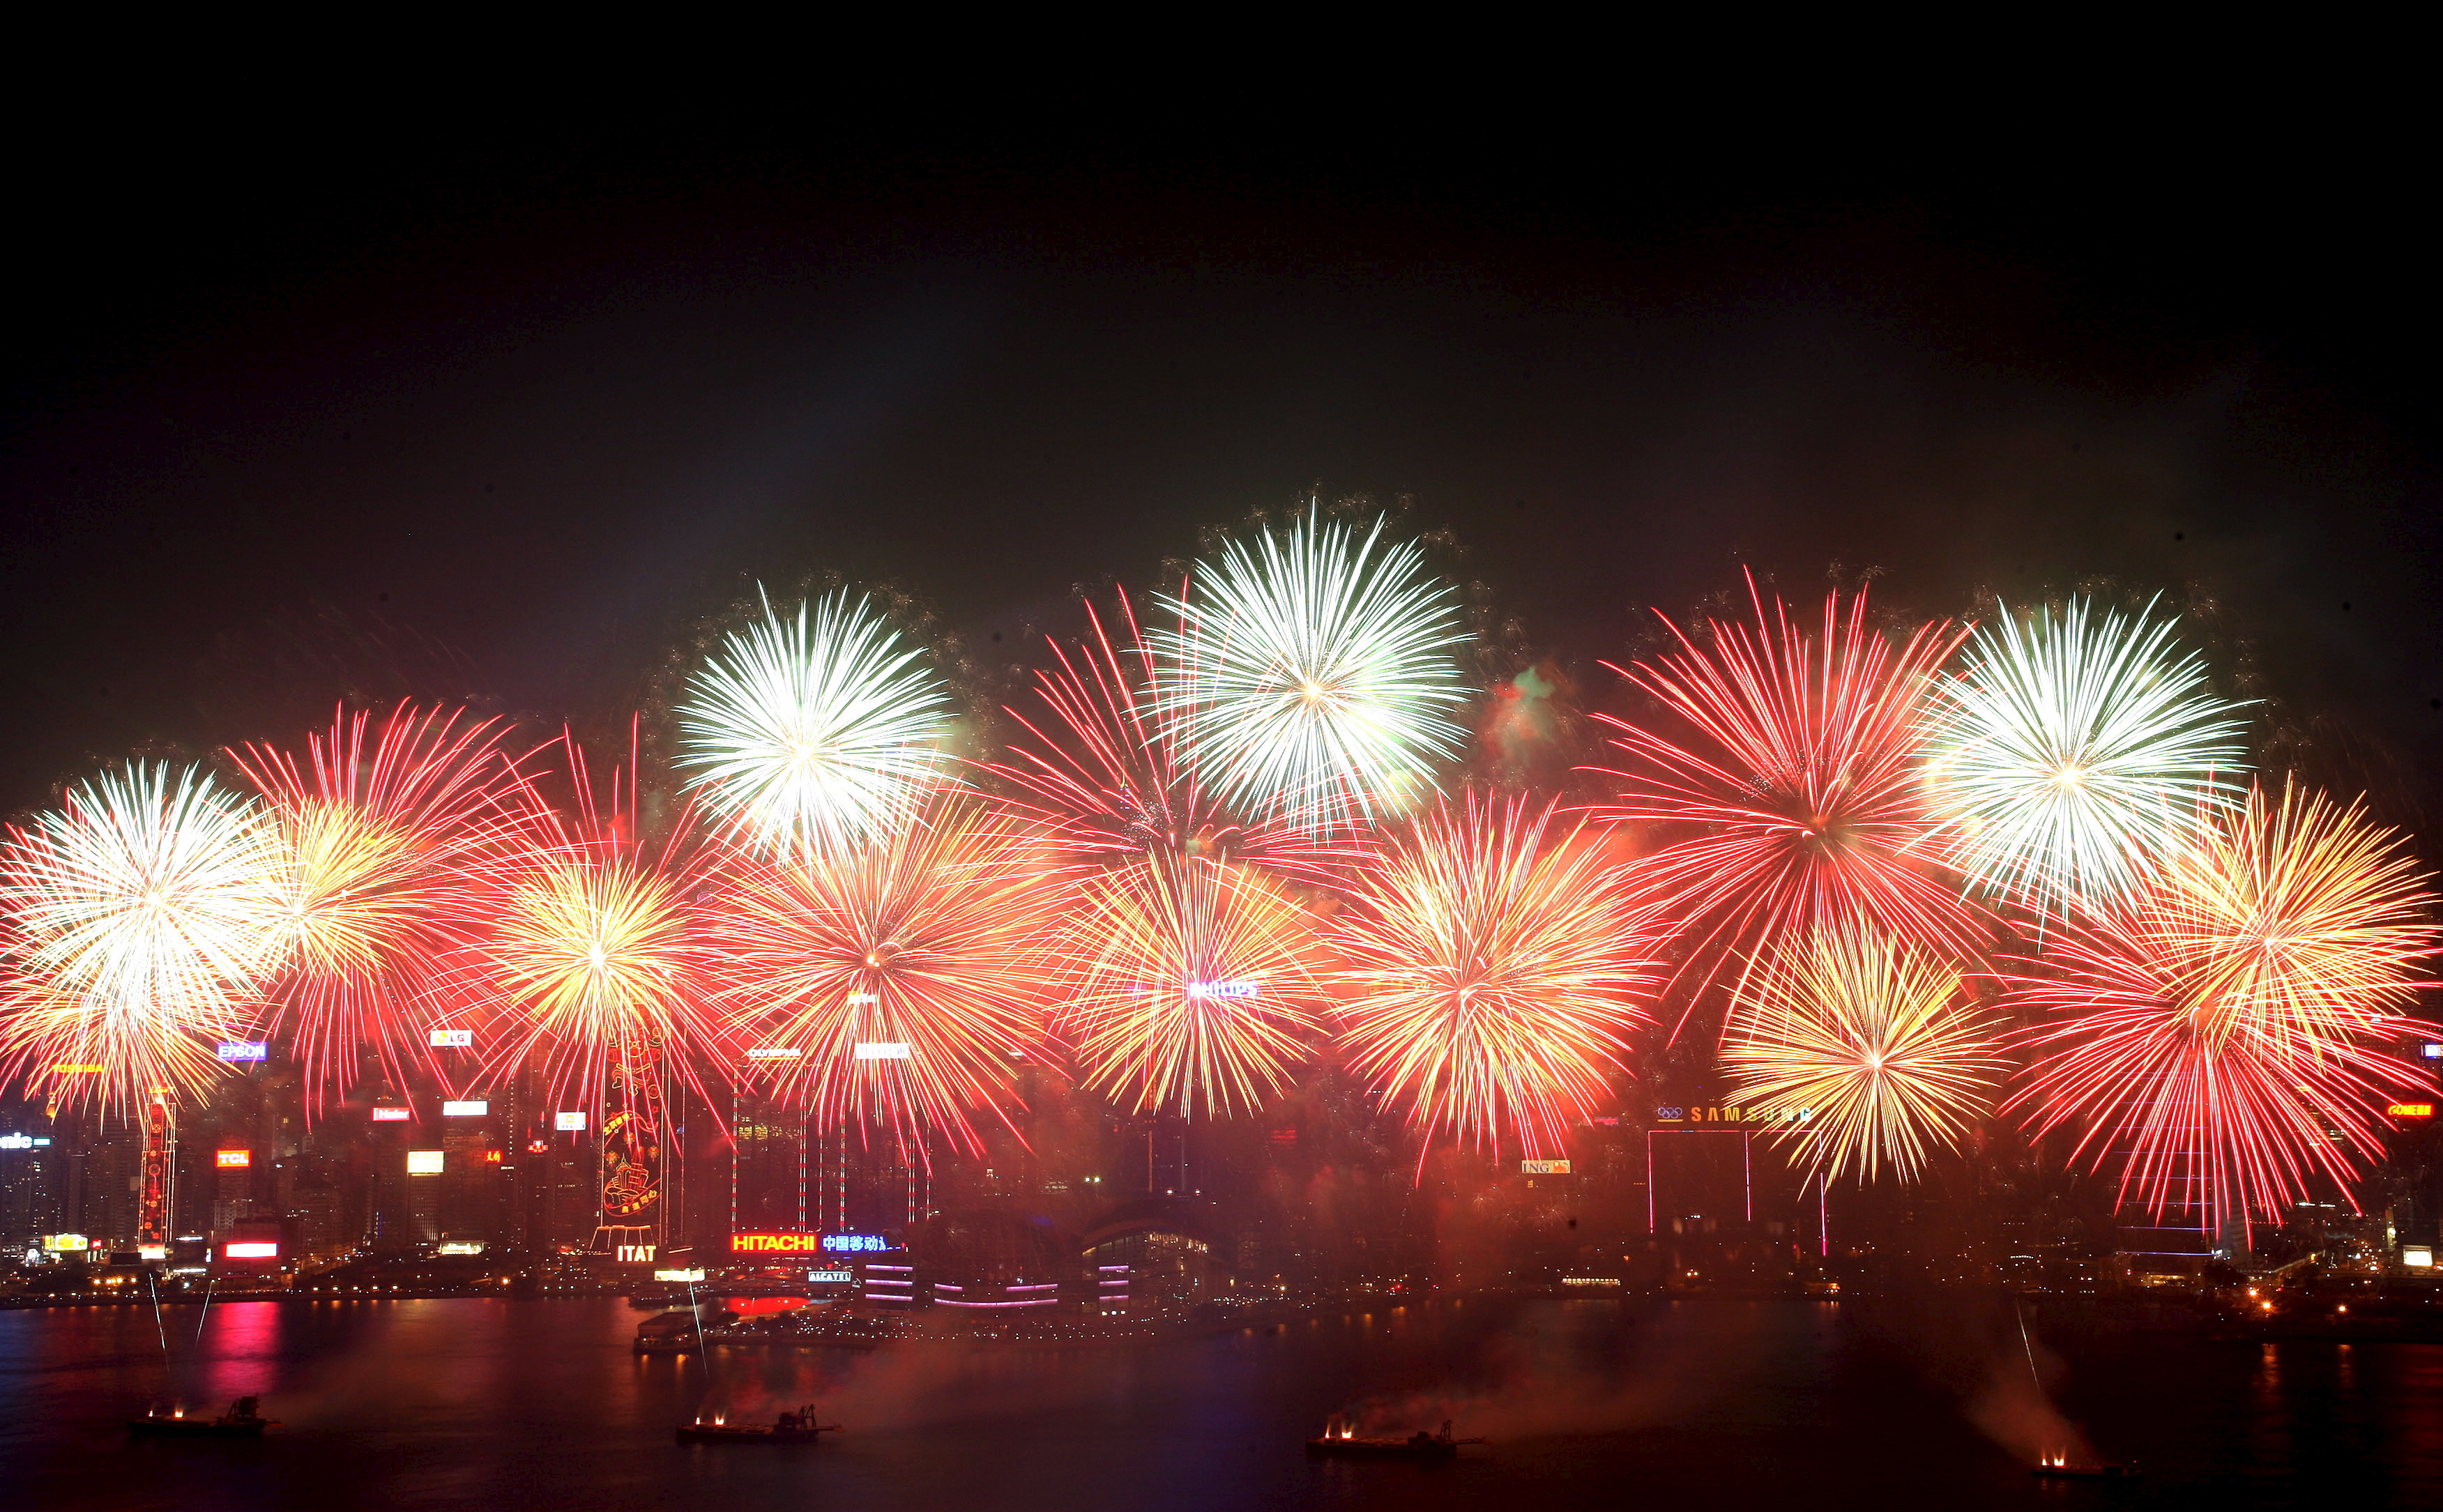 beautiful fireworks on chinese new year - Happy New Years In Chinese